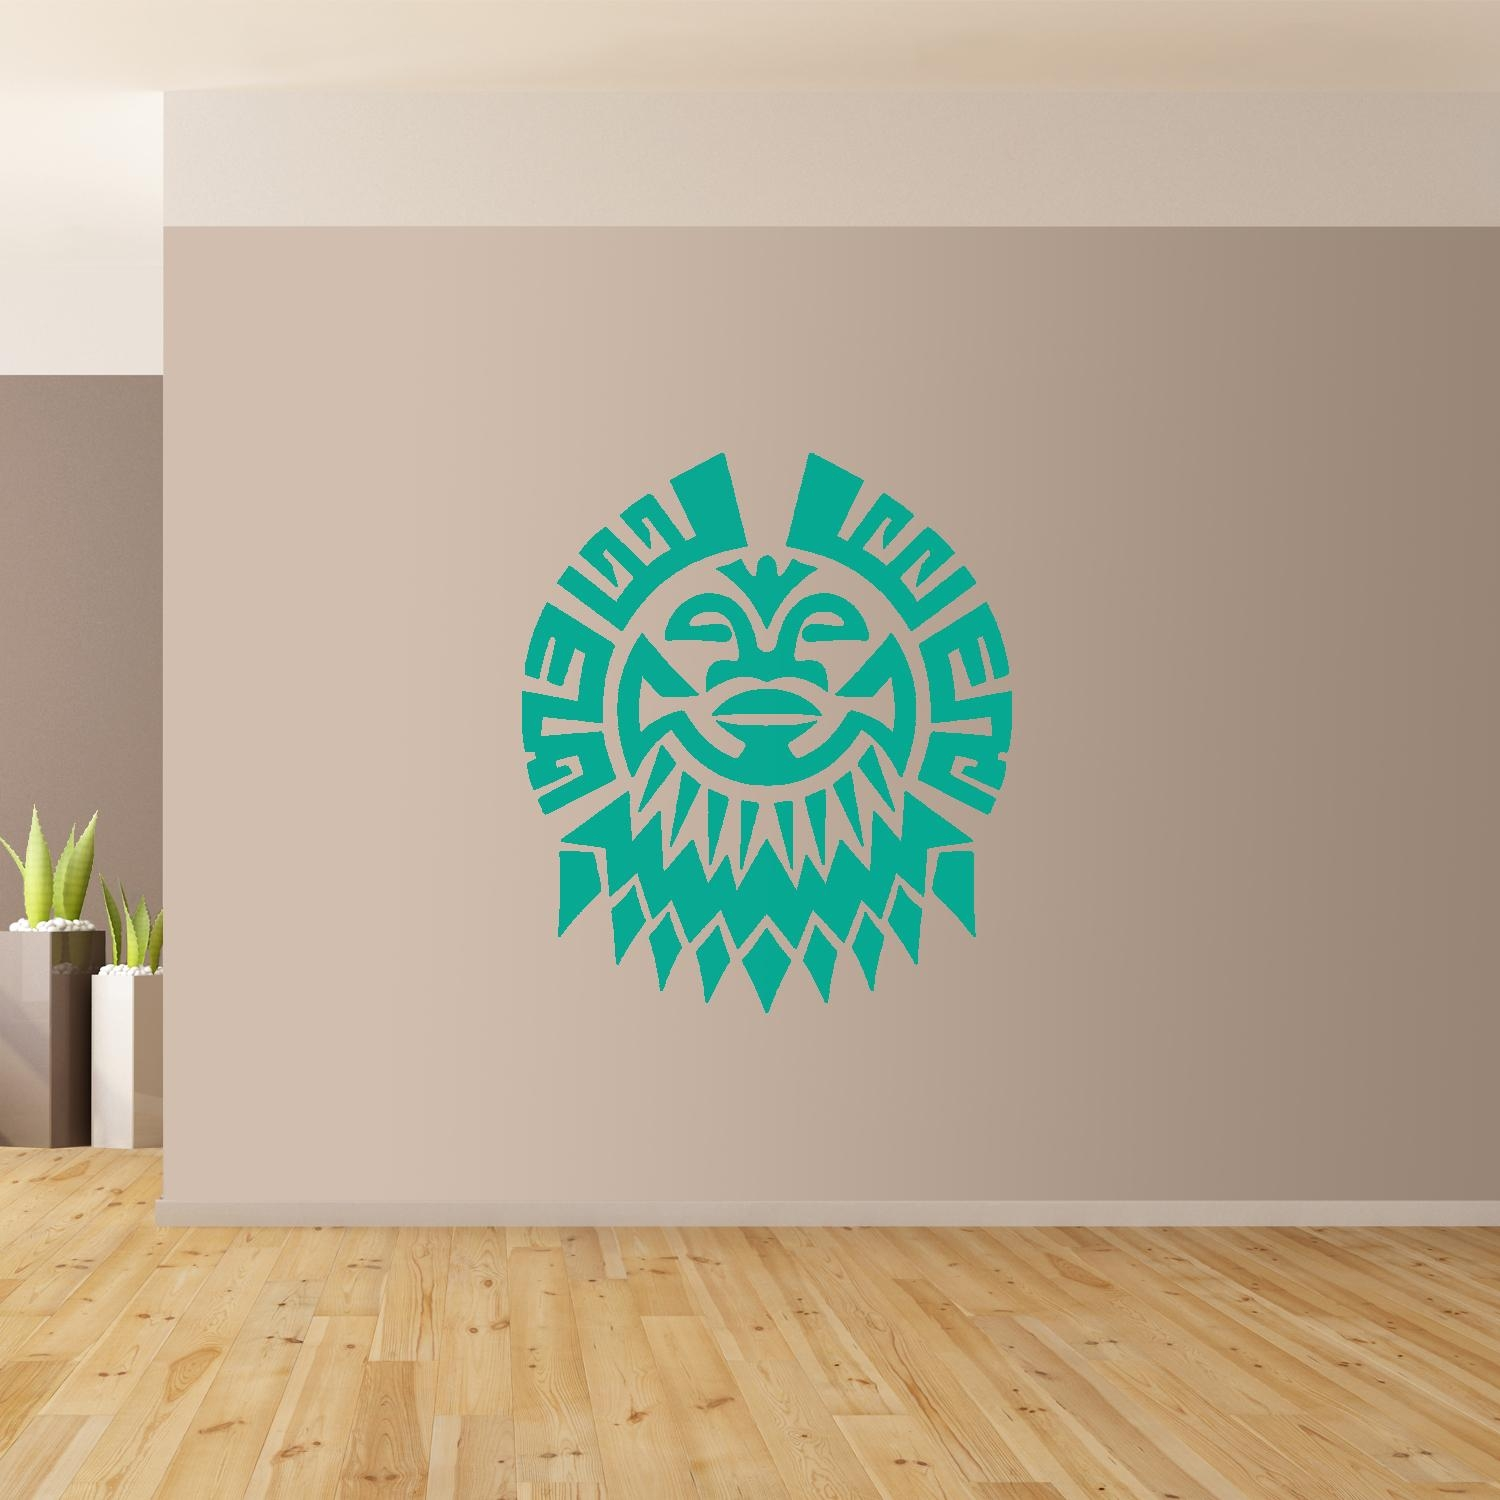 Polynesian Flower Wall Art Giant Sticker Mural Graphic French With Regard To Polynesian Wall Art (Image 11 of 20)